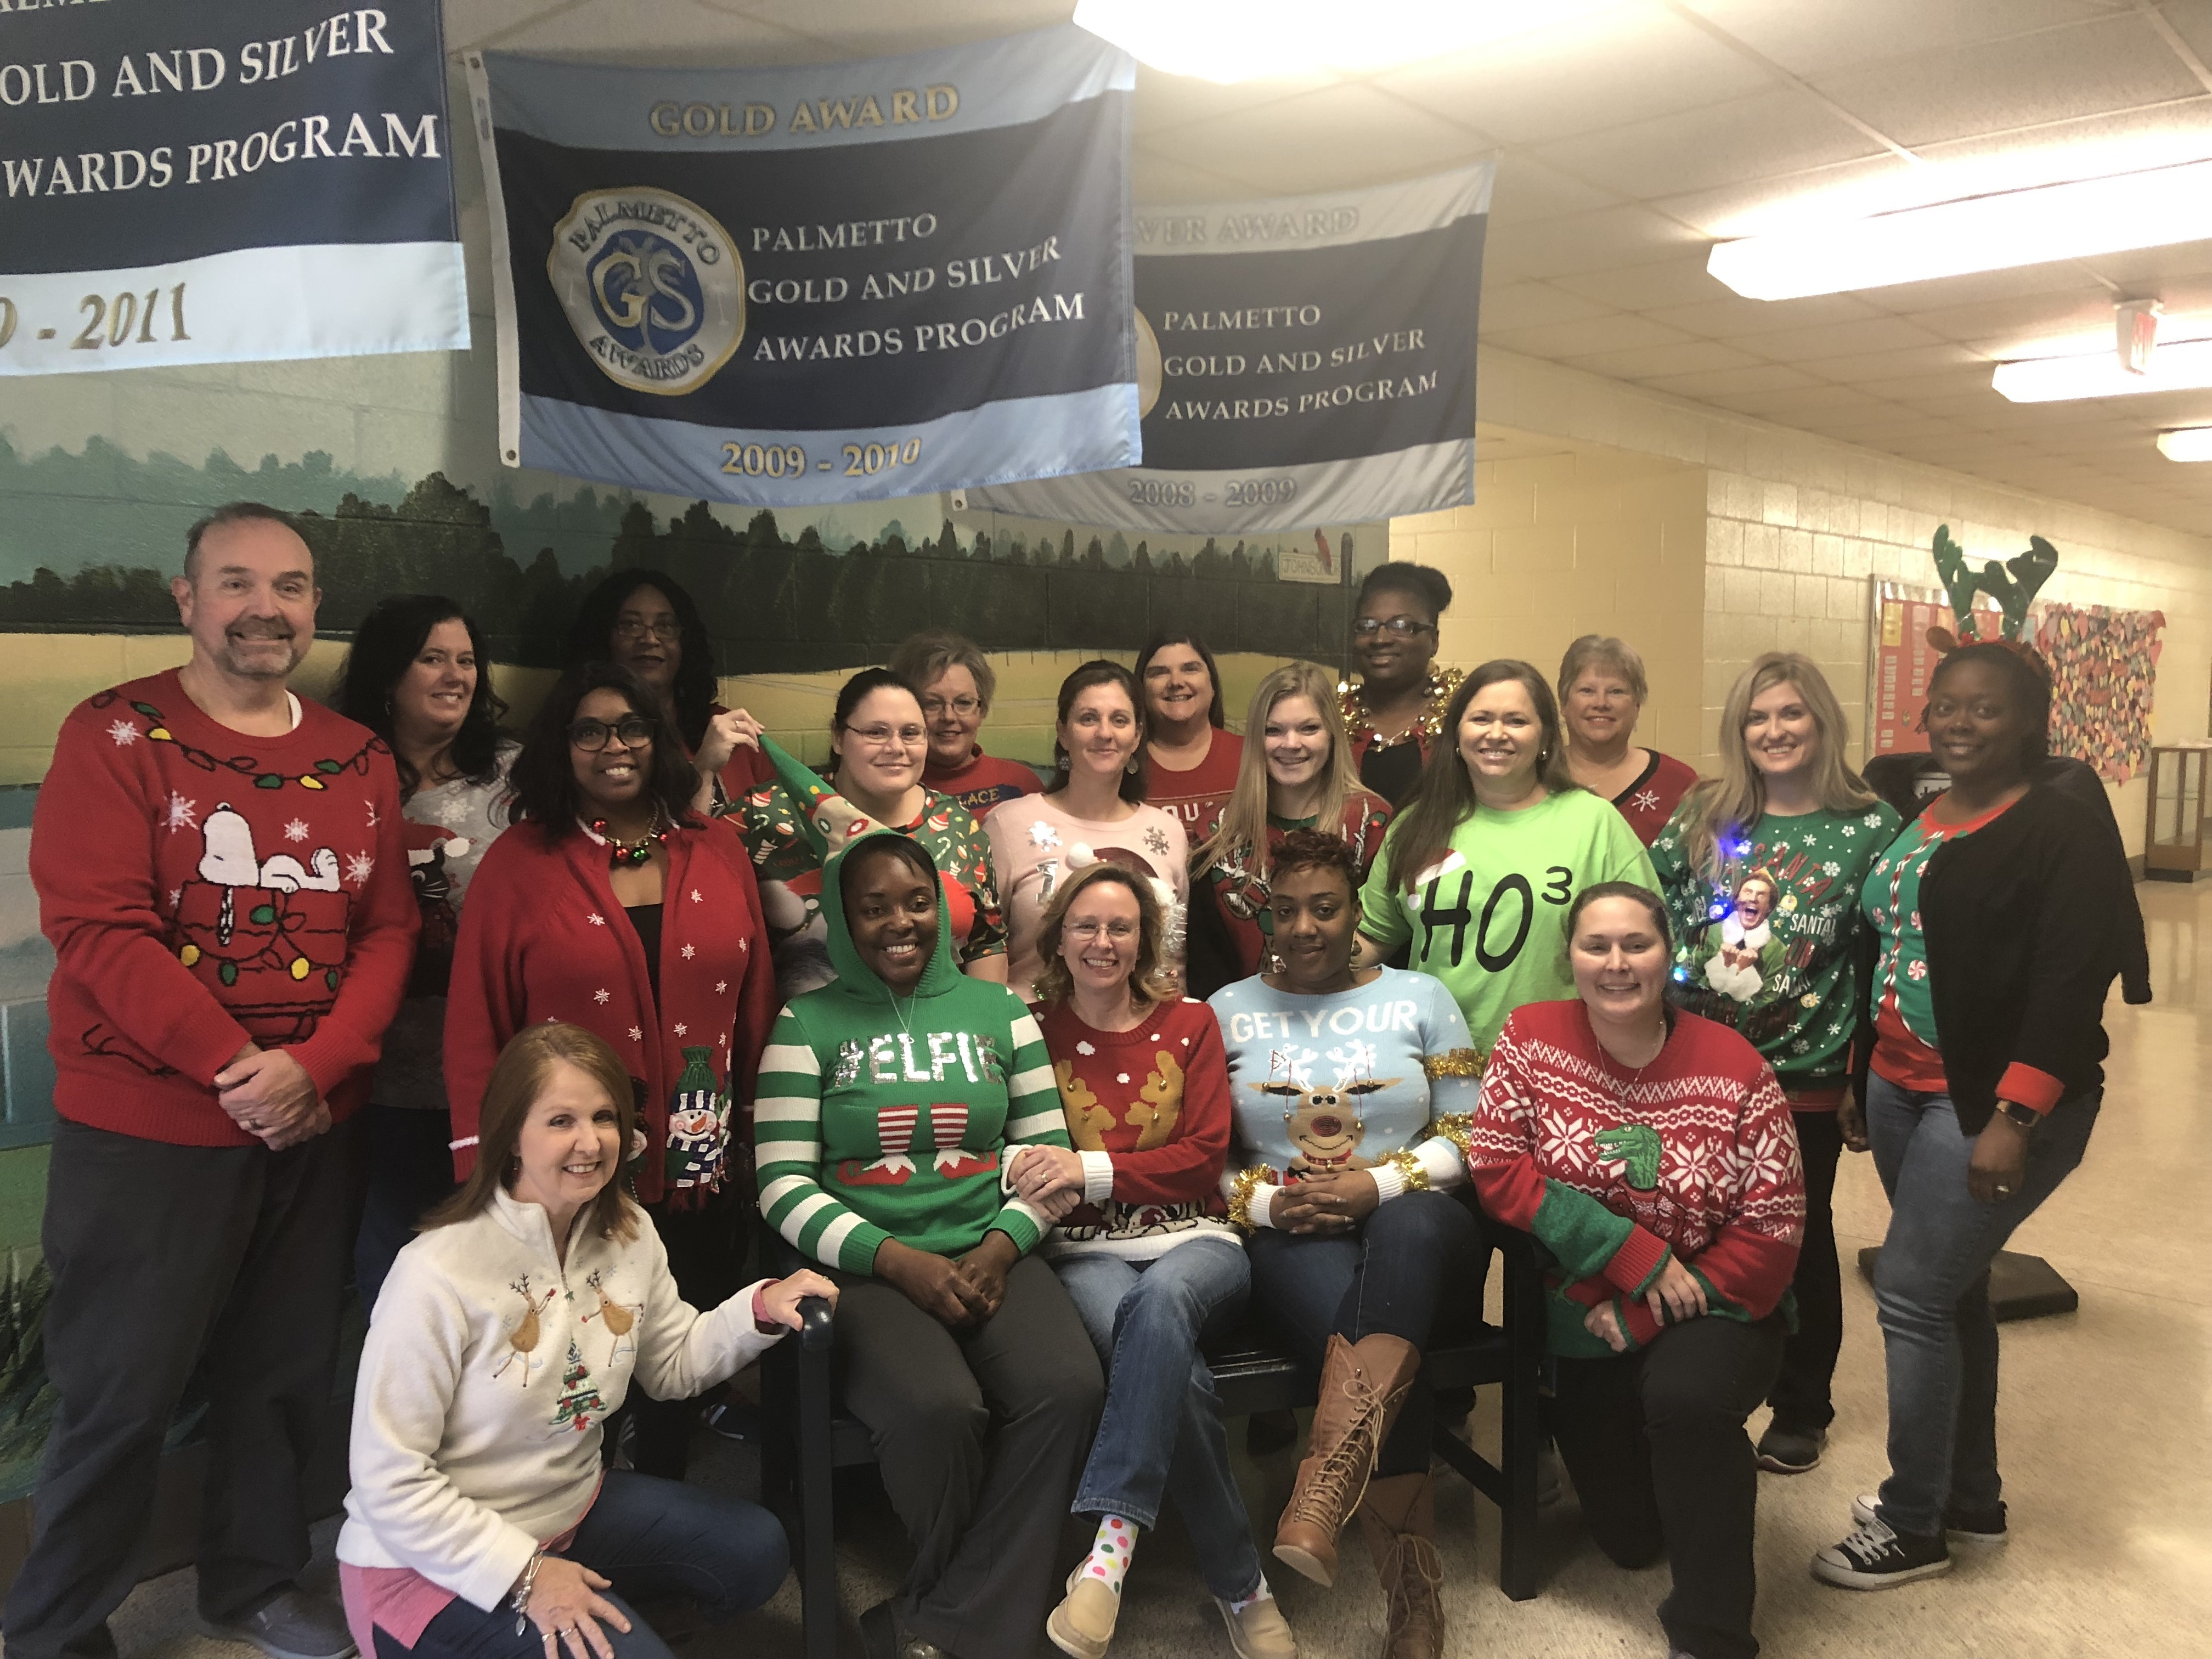 Faculty/Staff Ugly Christmas Sweaters